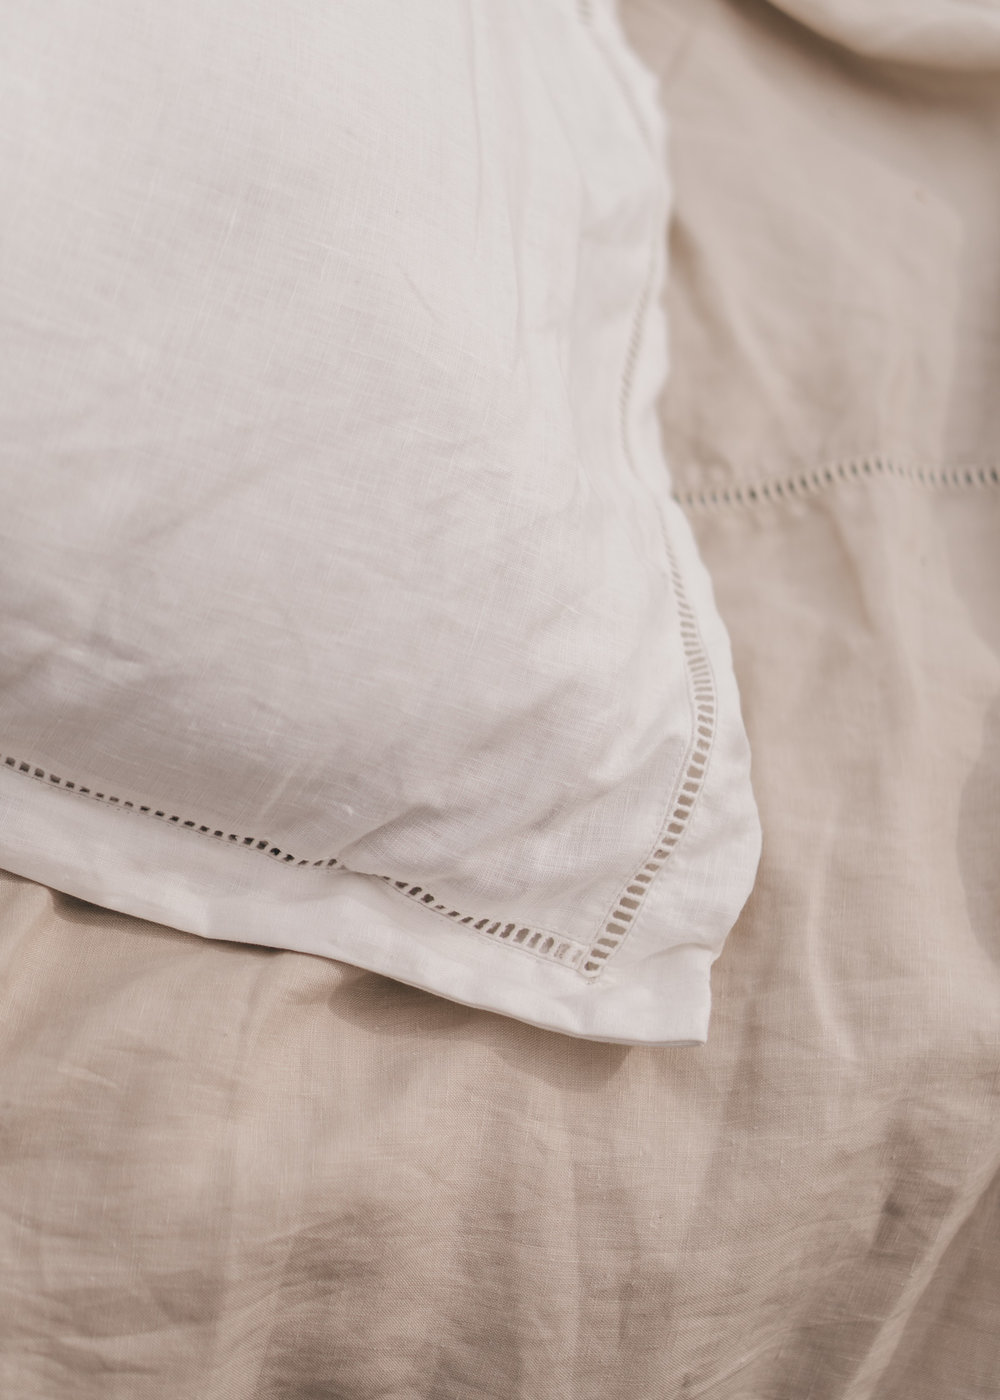 Keira-Mason-in-between-the-sheets-white-details.jpg